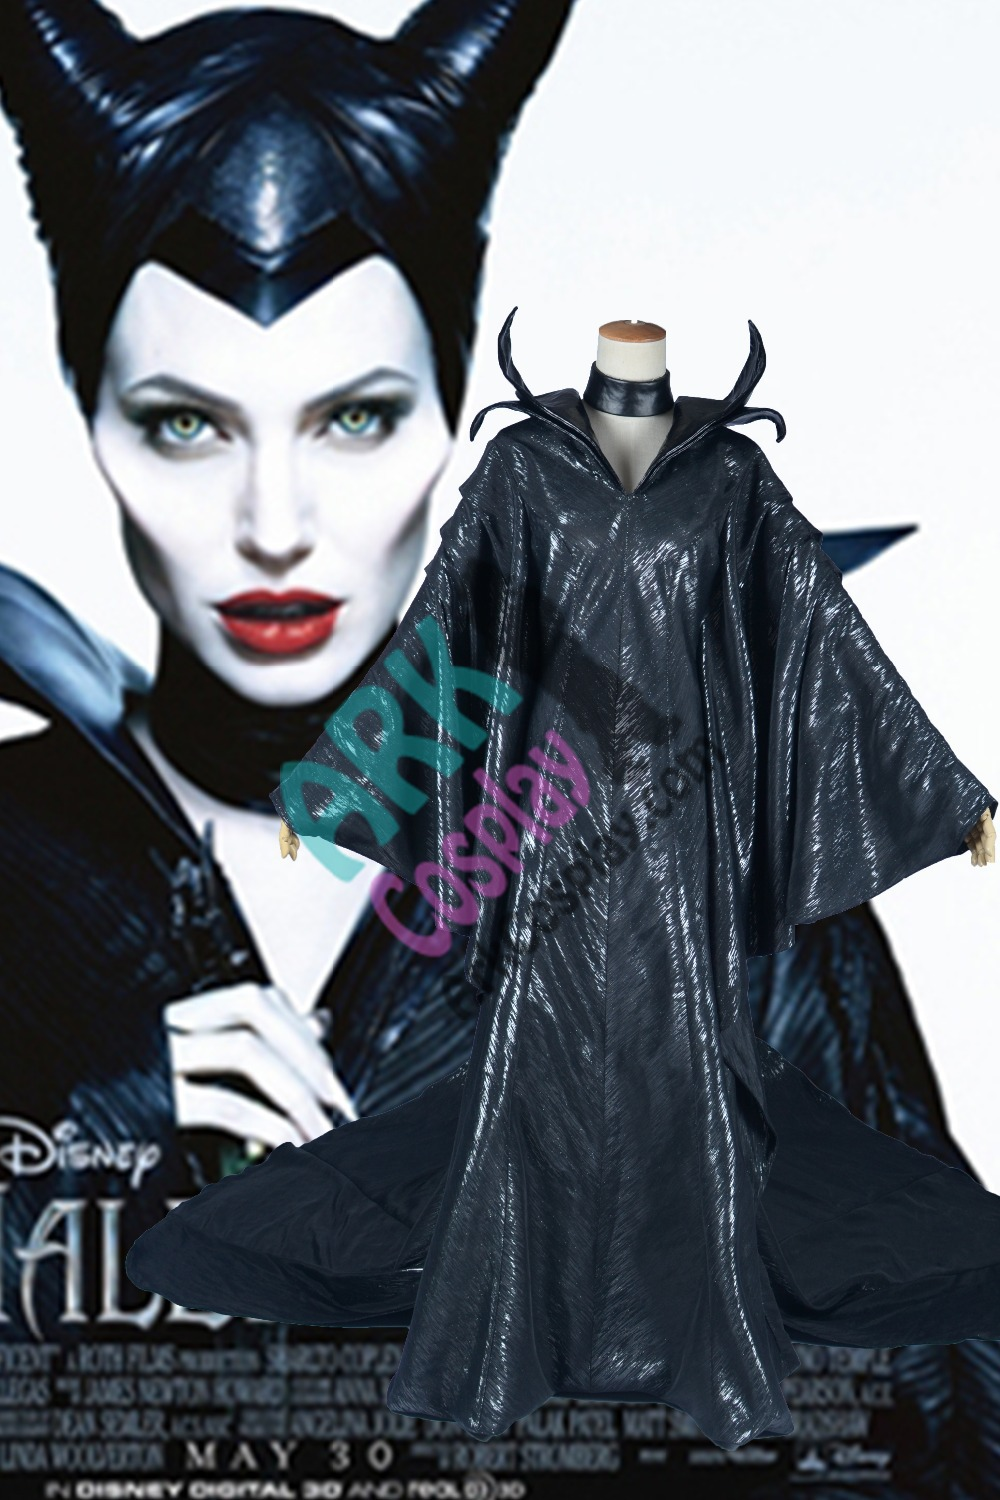 Us 121 99 Maleficent Costumes Maleficent Evil Queen Cosplay Costume Maleficent Angelina Jolie Cosplay Costume In Movie Tv Costumes From Novelty